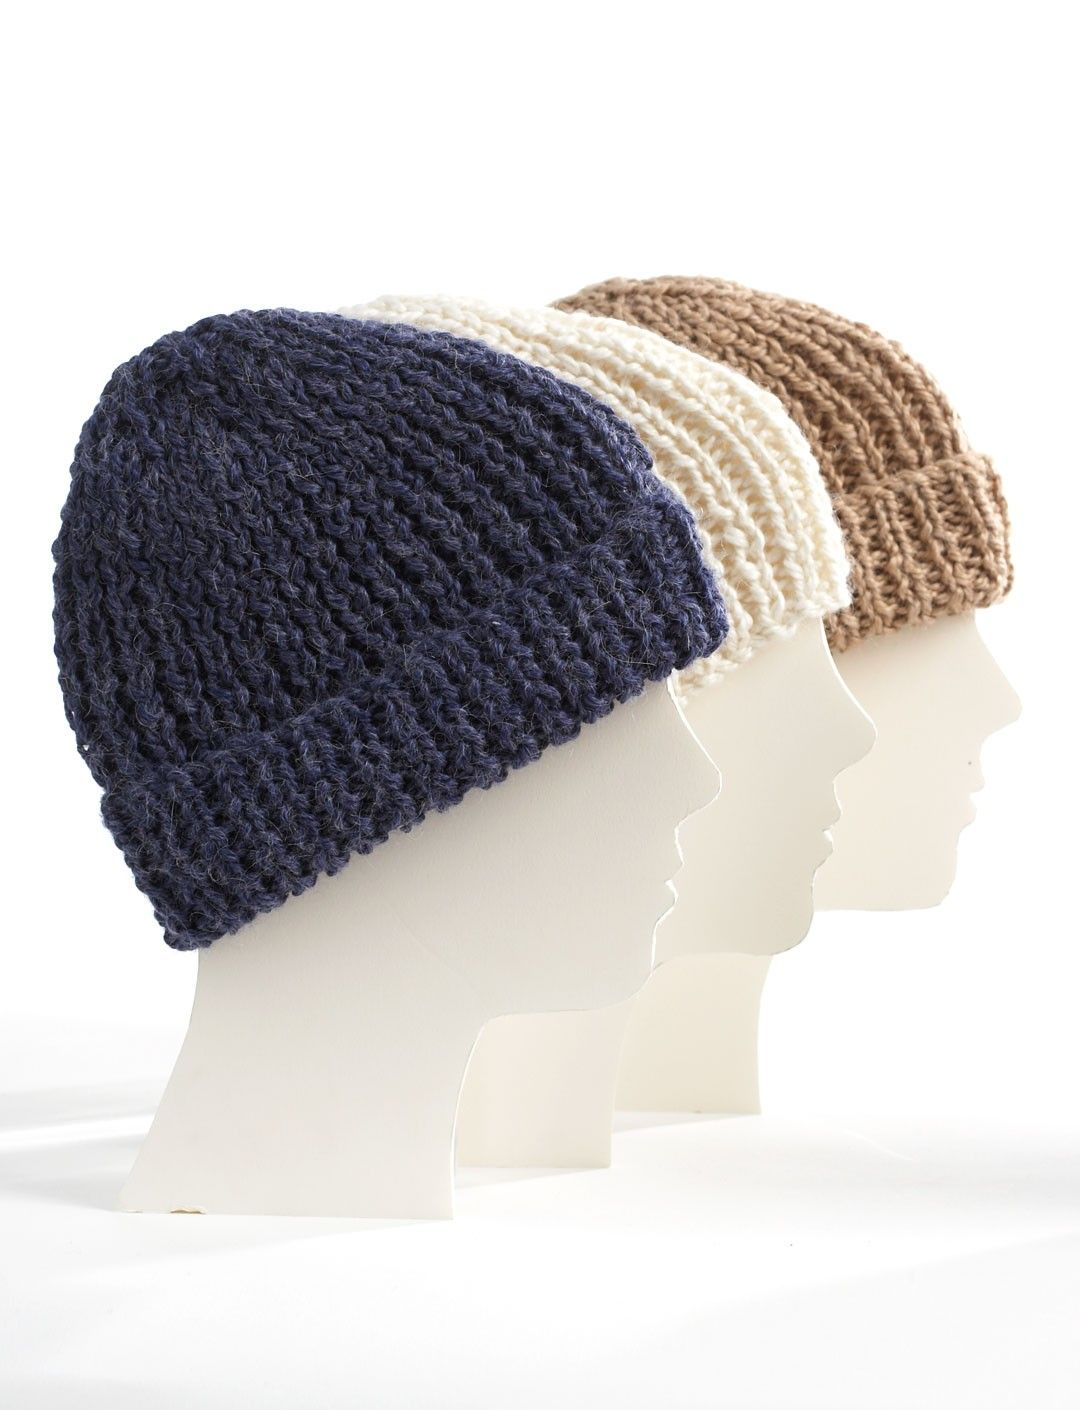 94c77d84128 Bernat Family of Hats - can be made with Lion s Pride Woolspun Yarn. 10  inches in length makes a generous cuff for keeping ears warm.